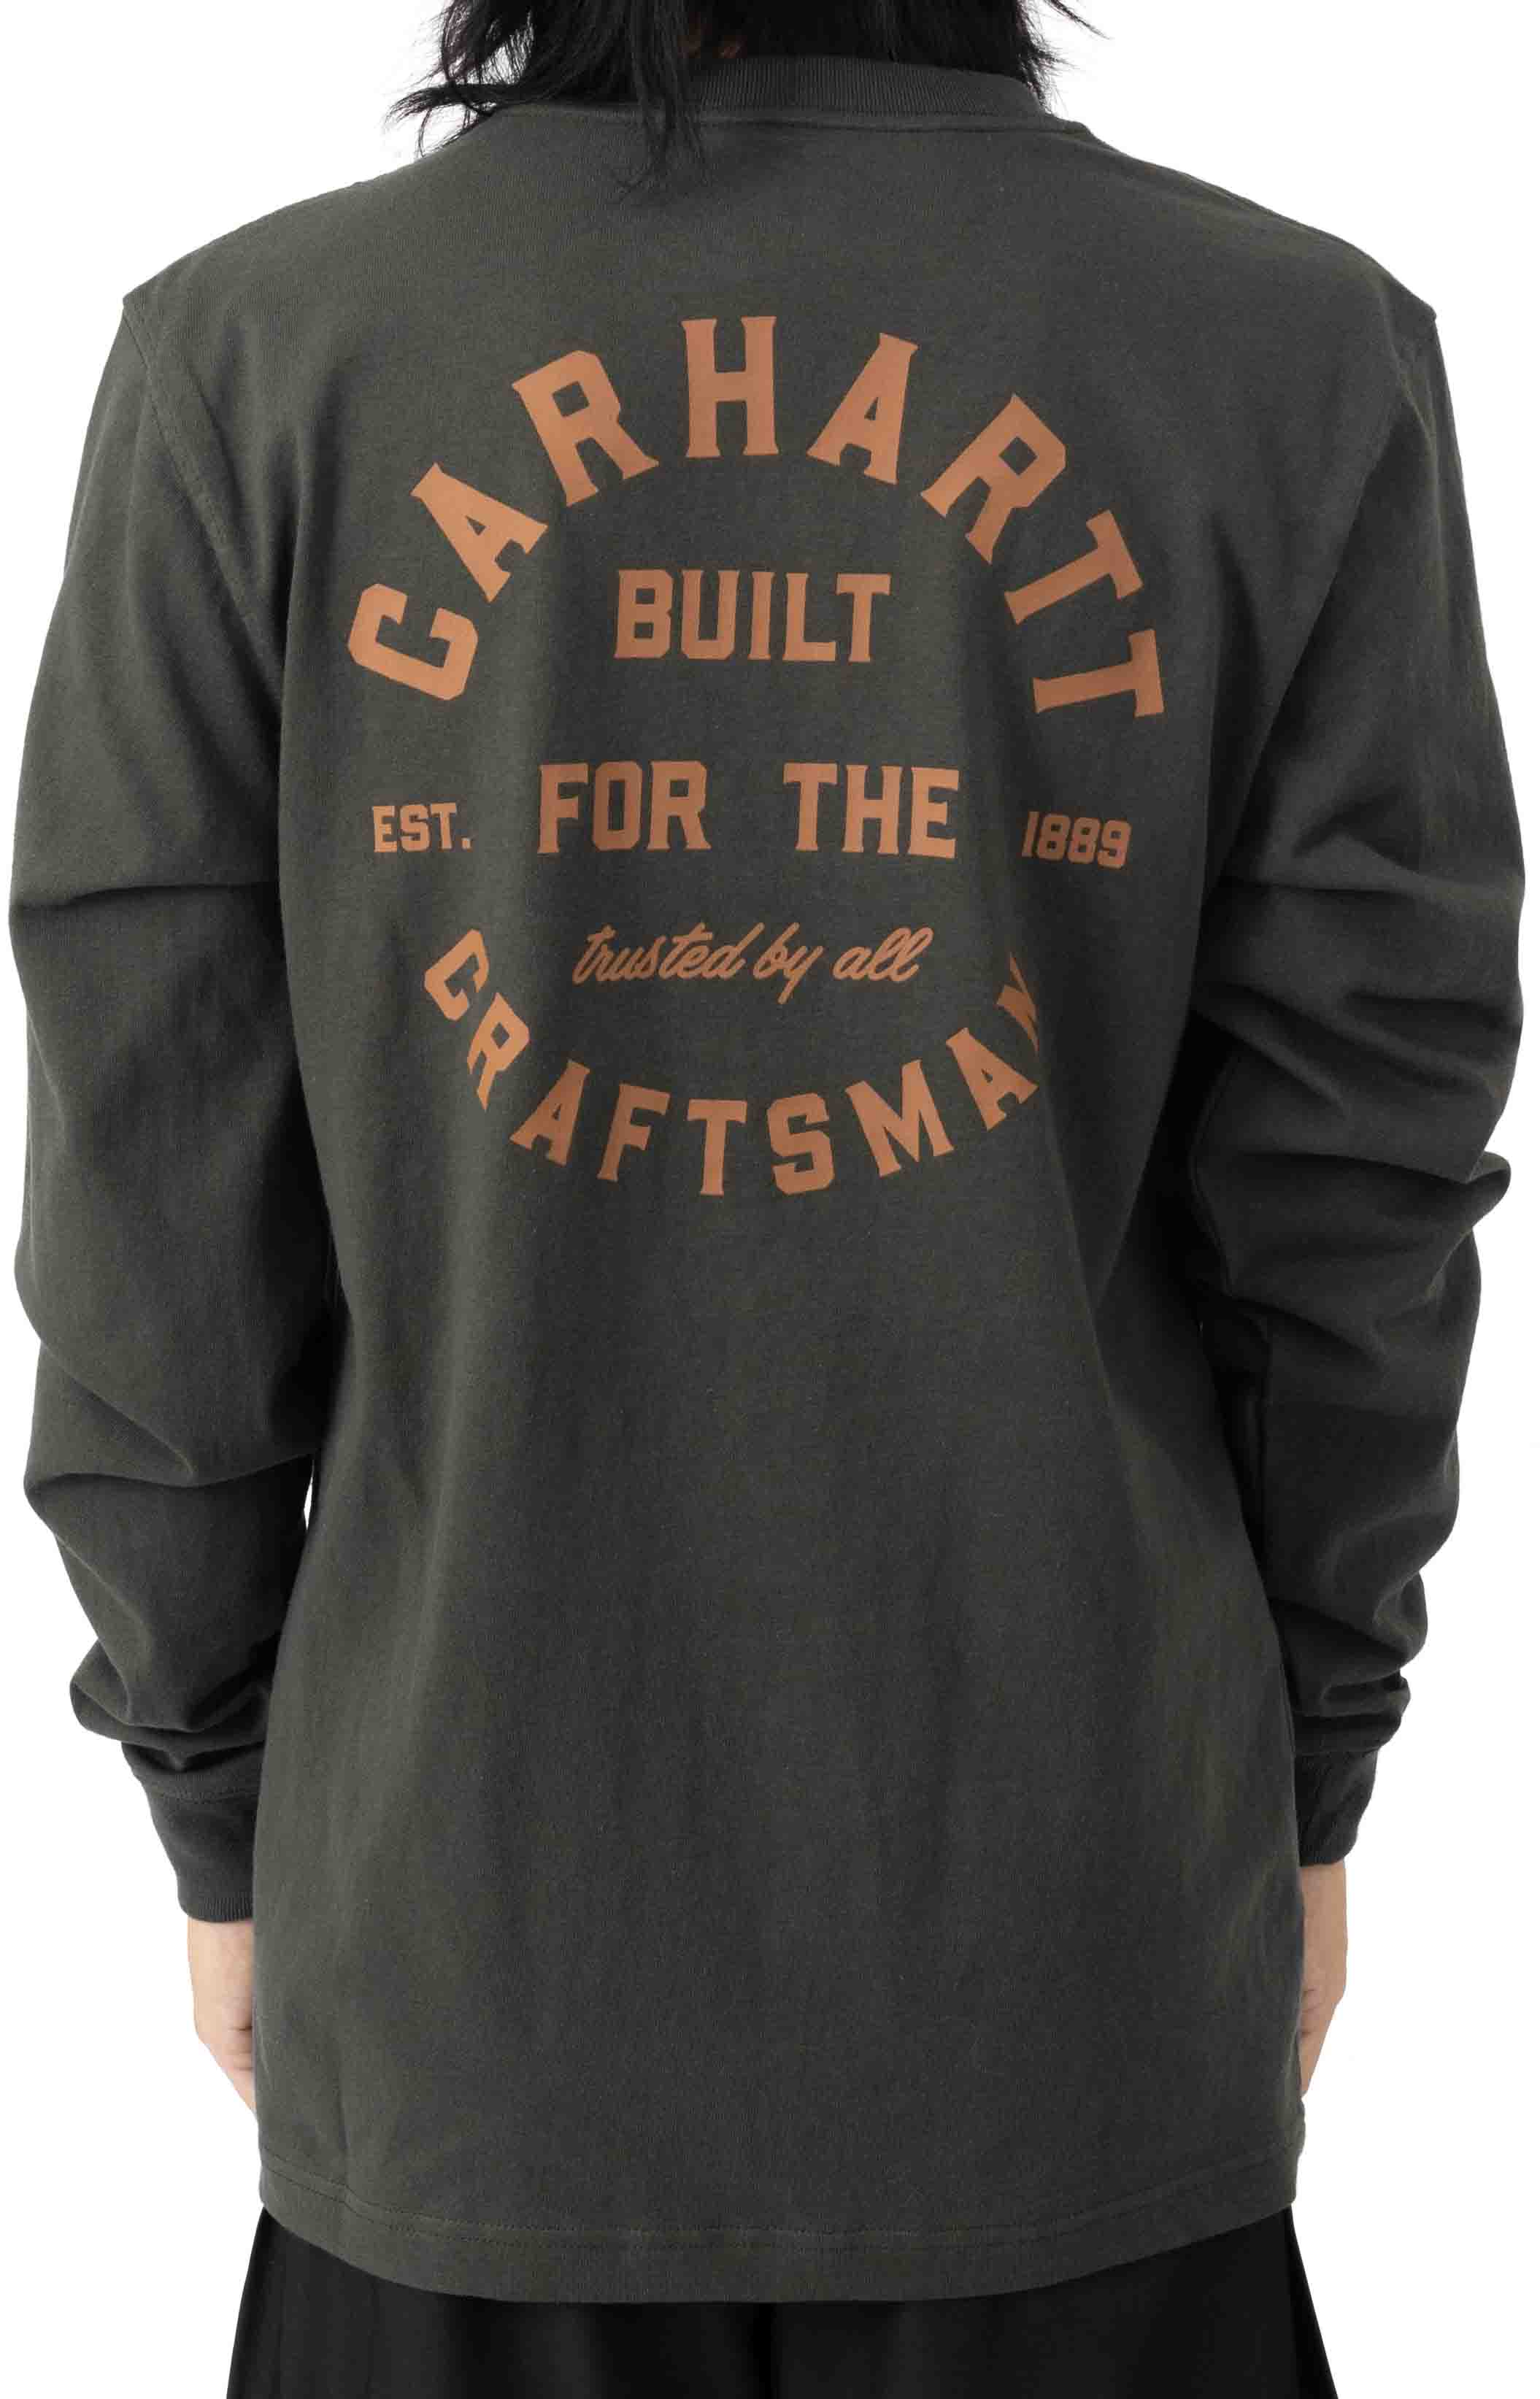 (104895) Relaxed Fit Heavyweight LS Pocket Craftsman Graphic T-Shirt - Peat